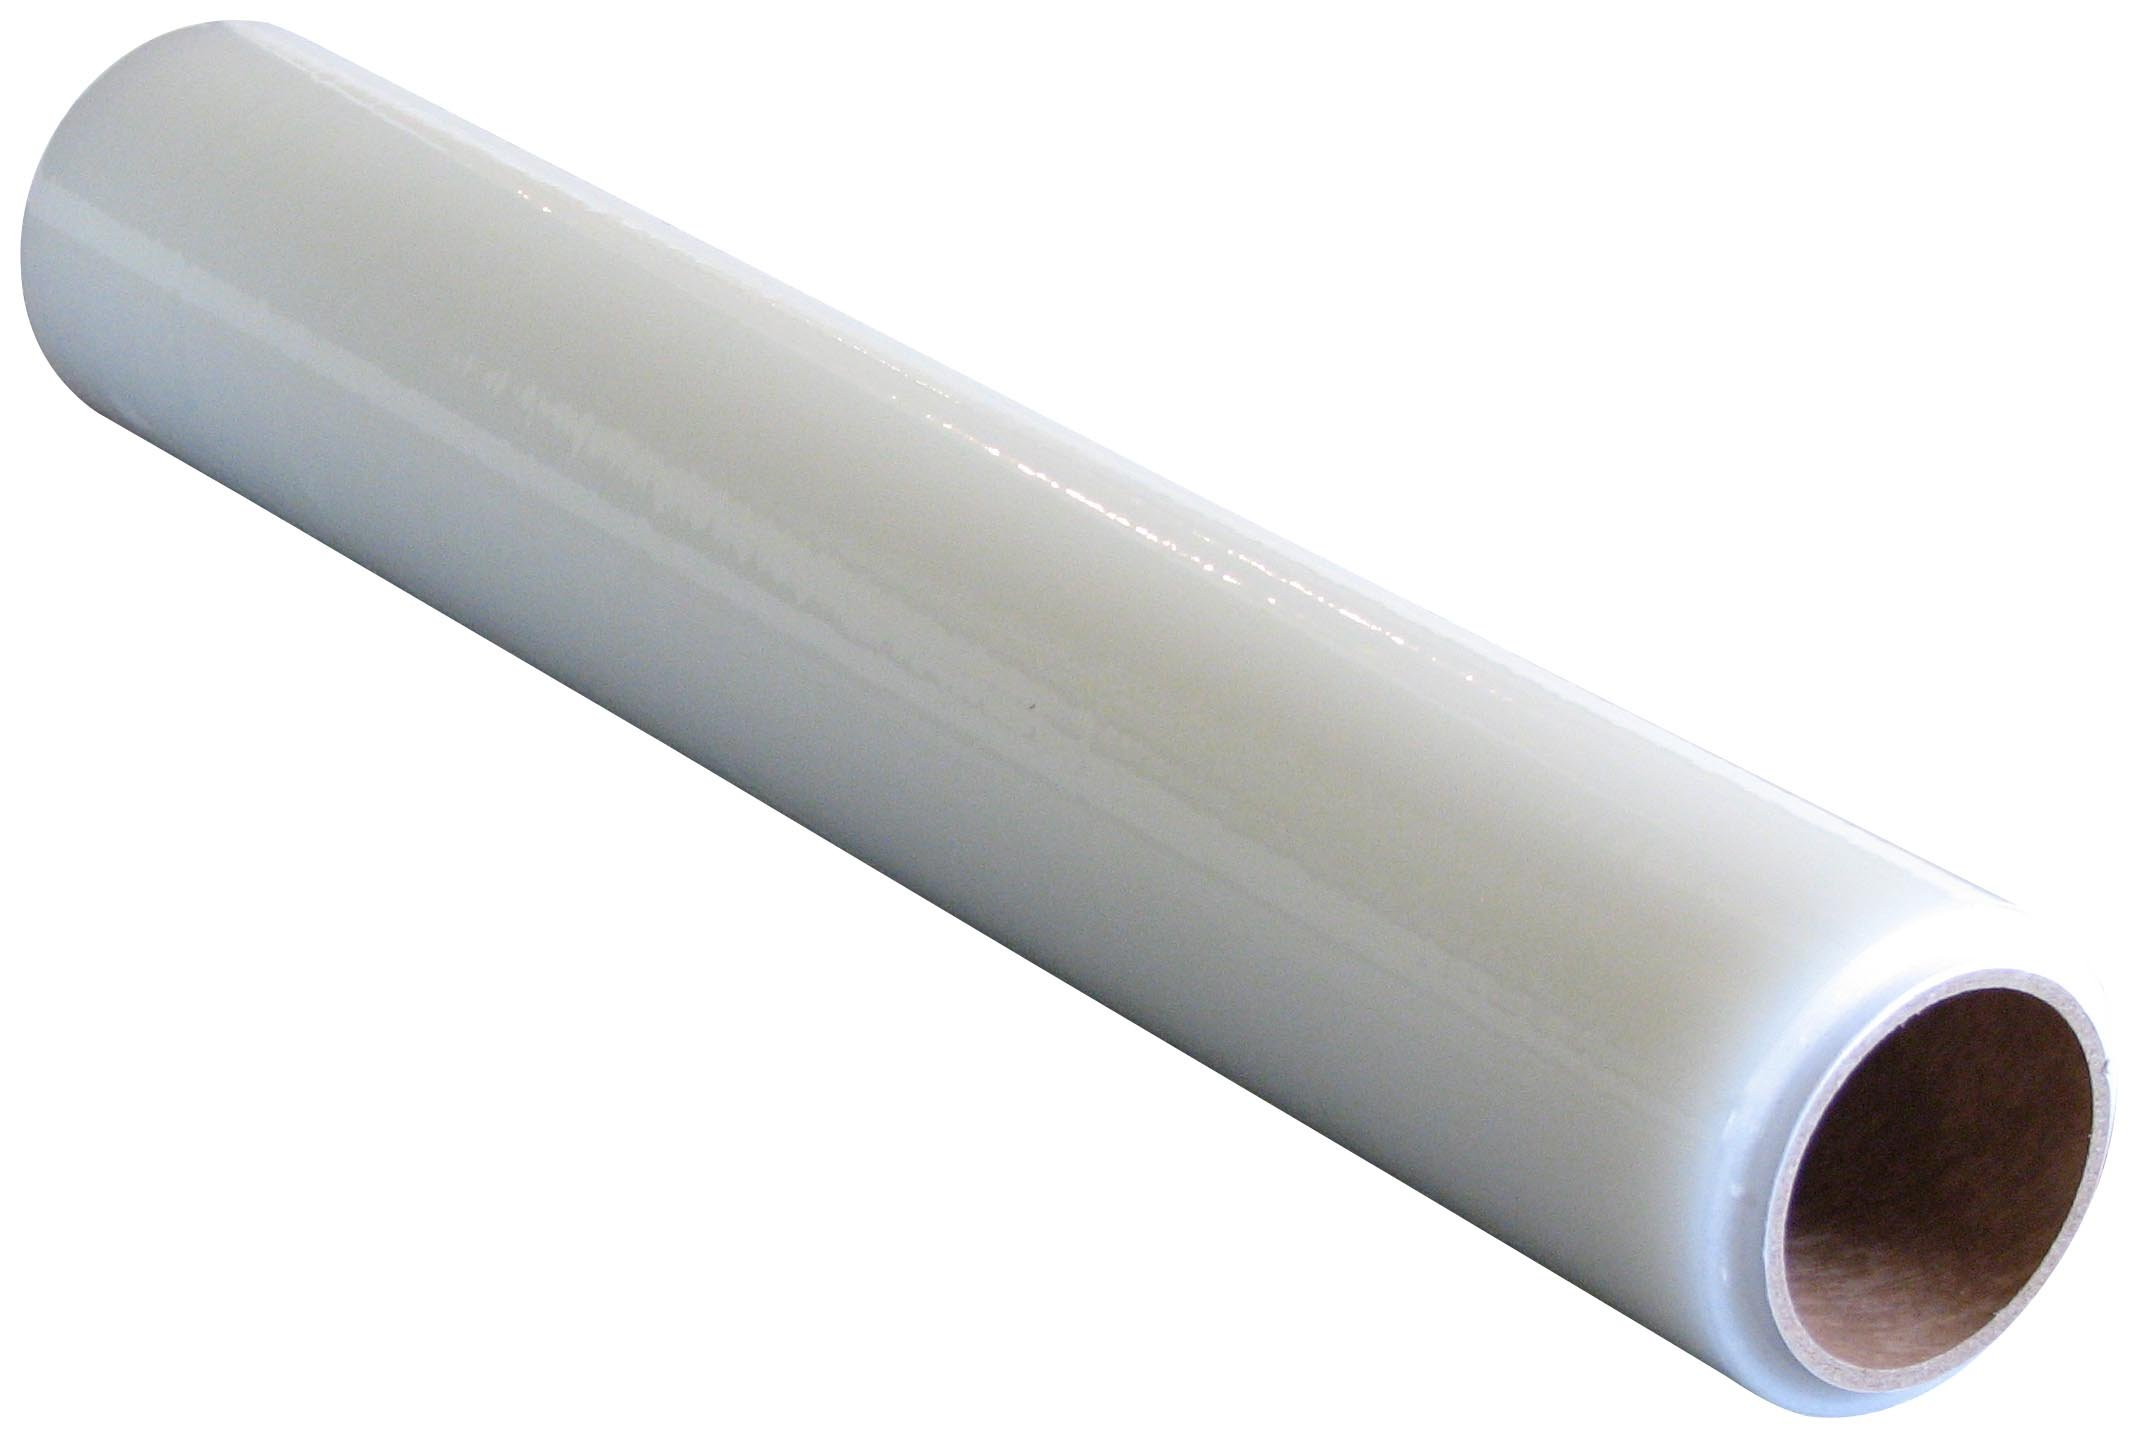 Plasticover Carpet Protection Film, Temporary Adhesive Plastic, Clear, 36'' Wide by 500' Long